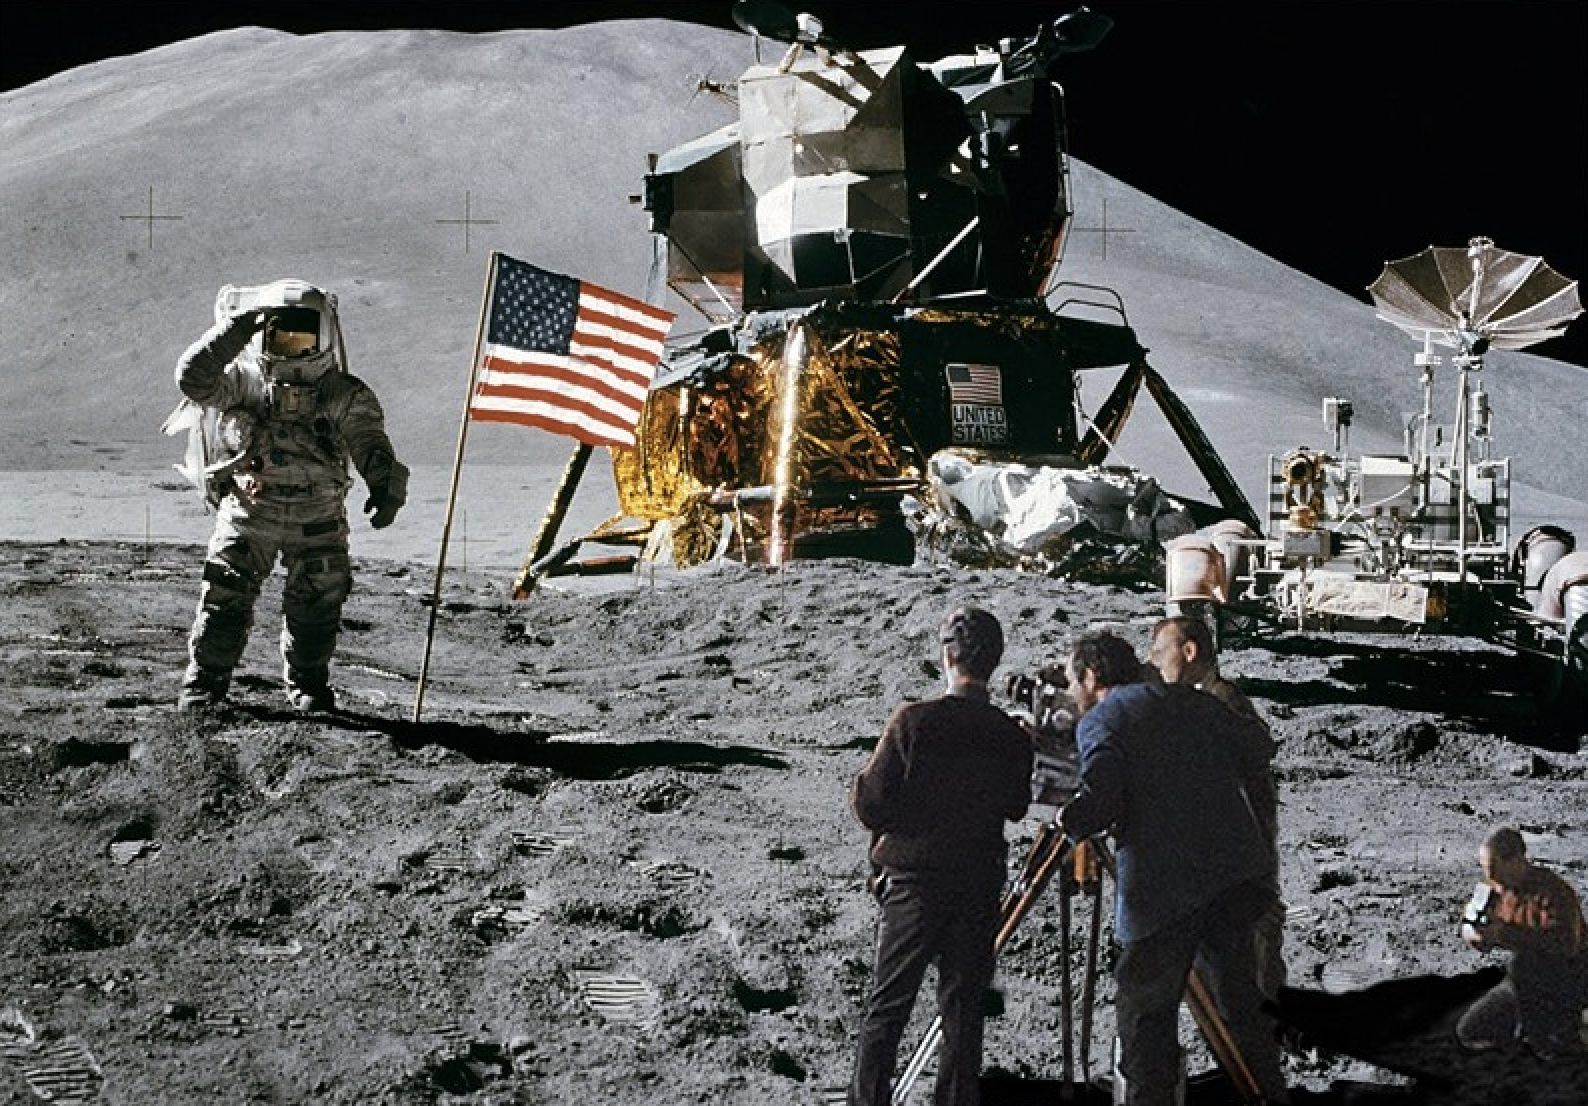 Apollo Moon Landings: Pseudoscience and 6 Reasons Why There